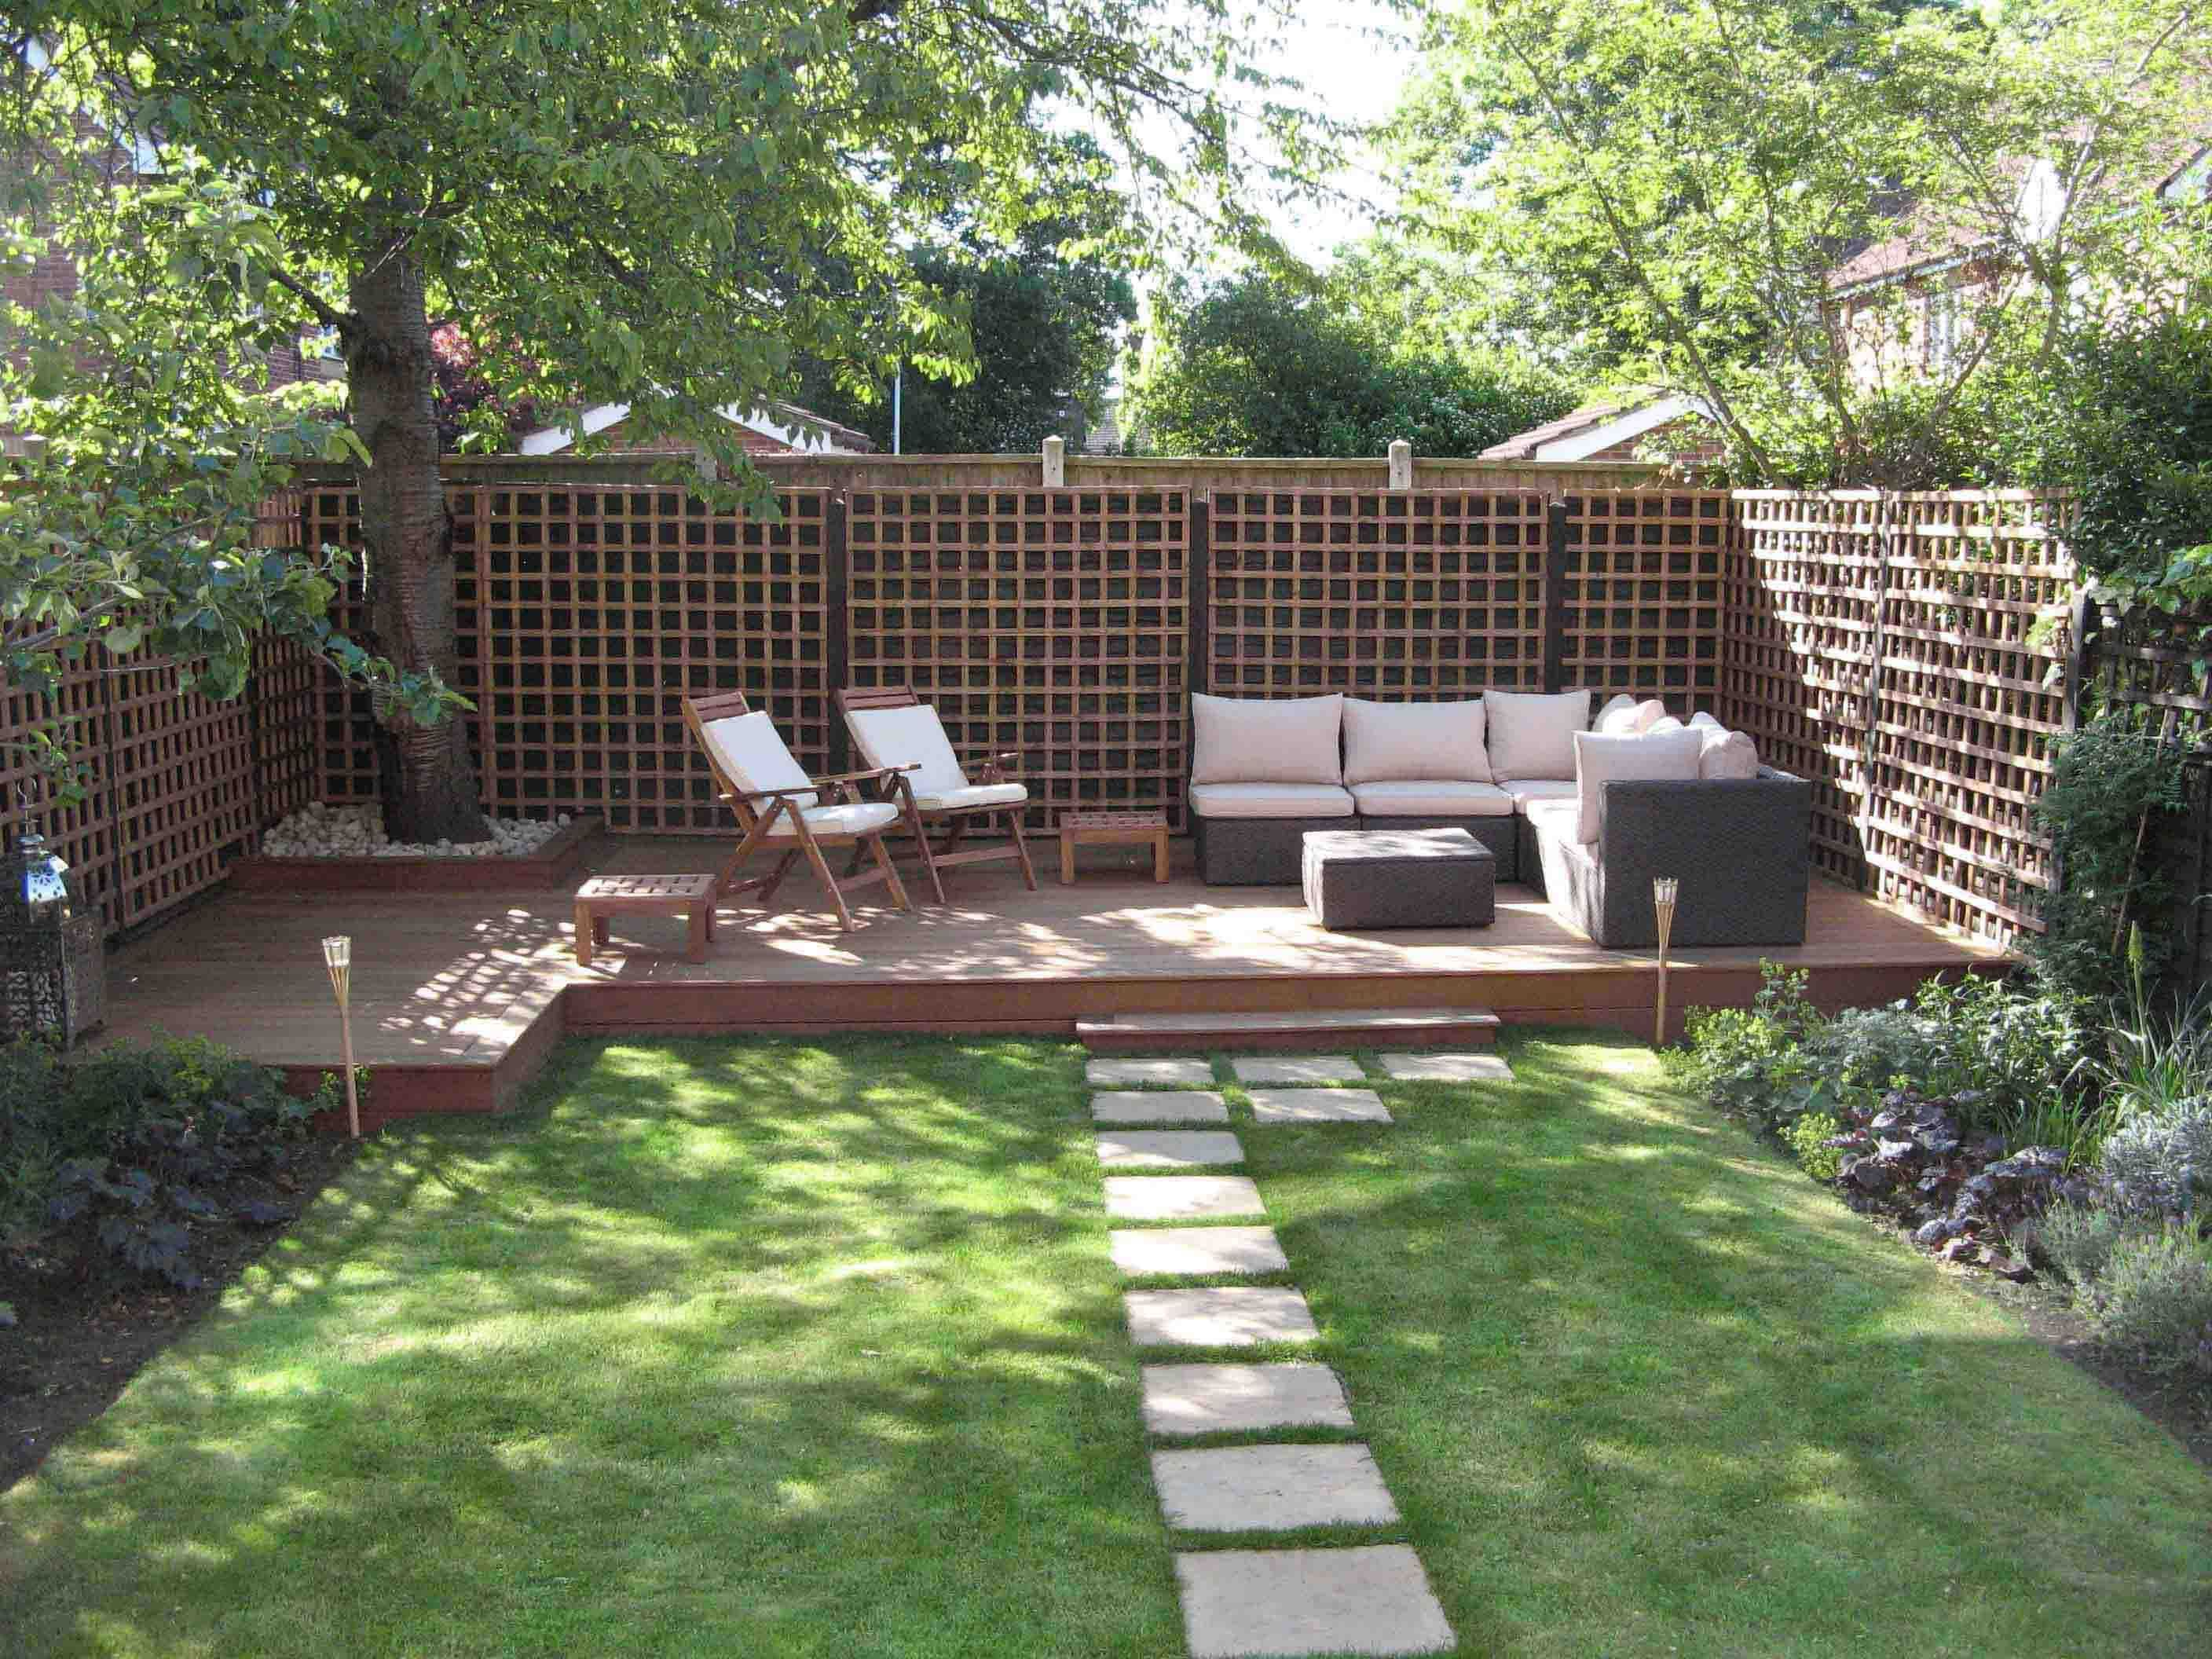 backyard patio designs on a budget - Patio Design Ideas On A Budget